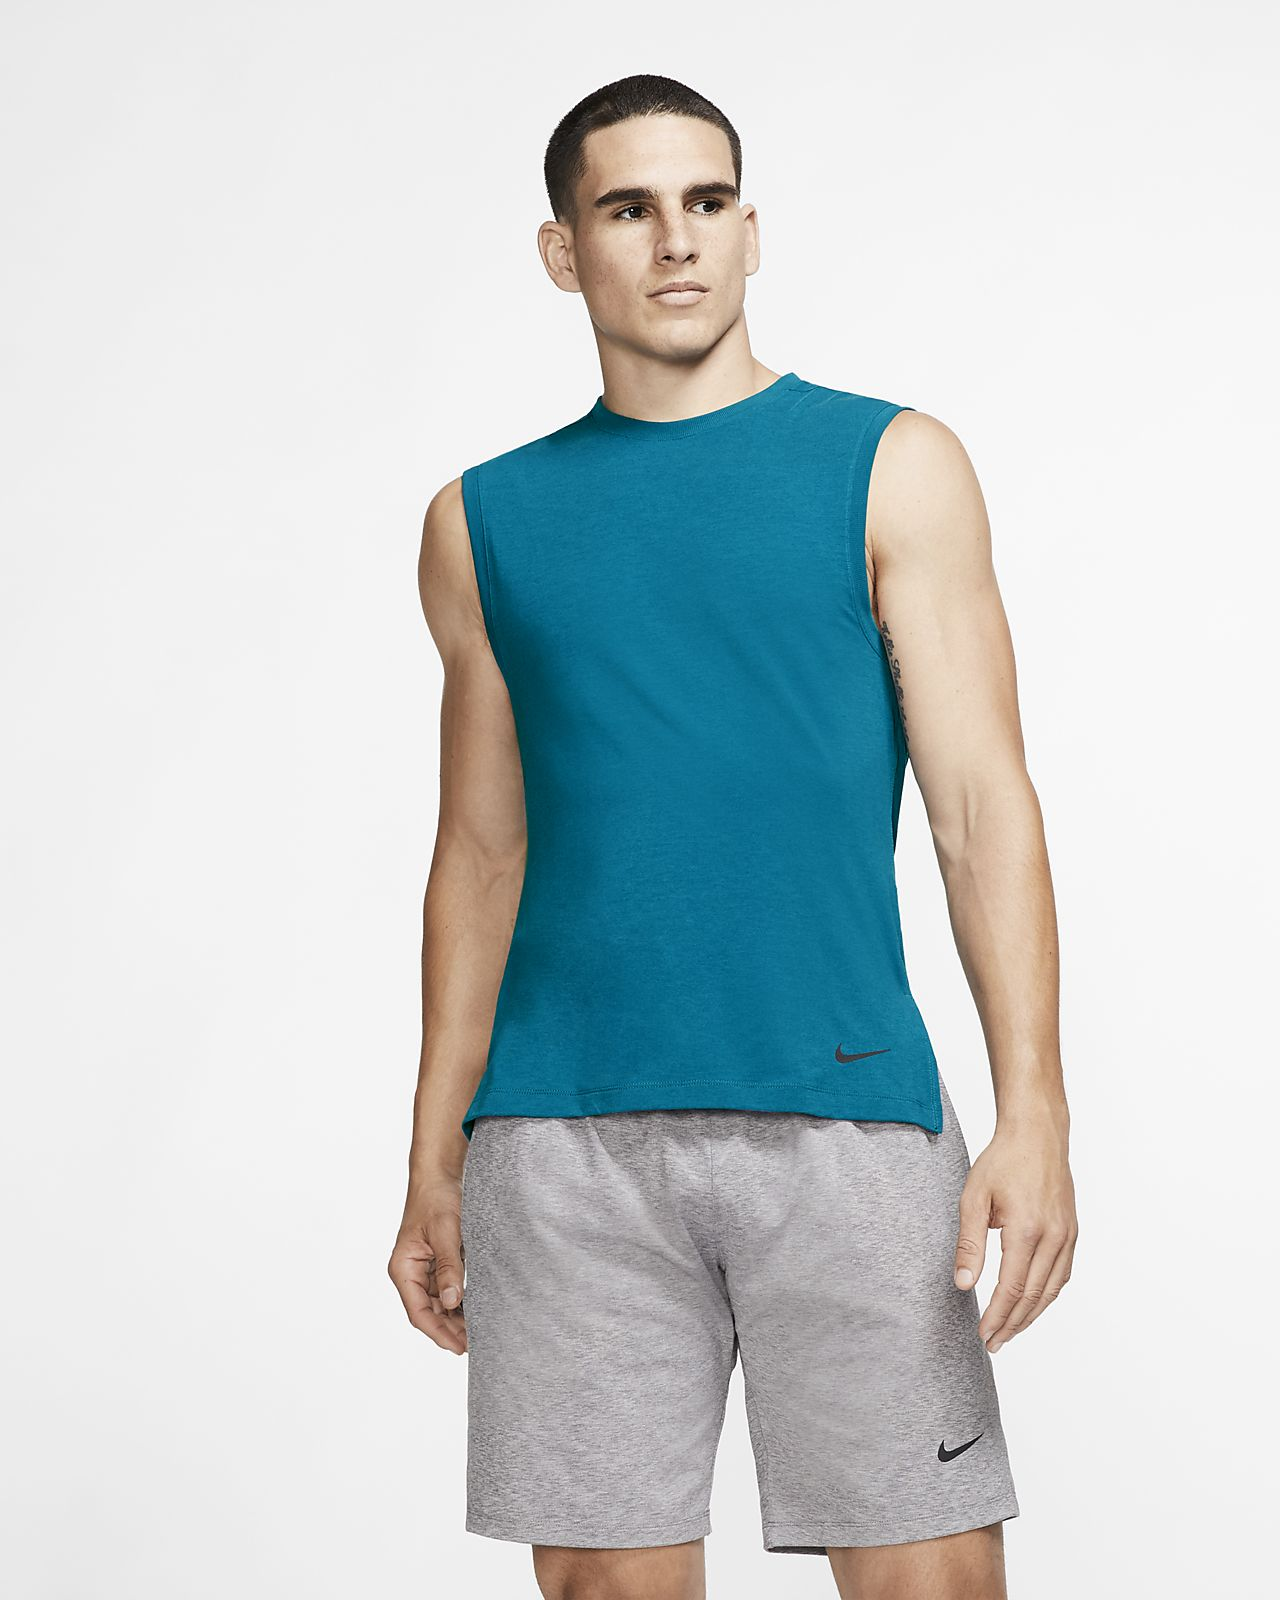 Nike Dri-FIT Men's Yoga Training Tank